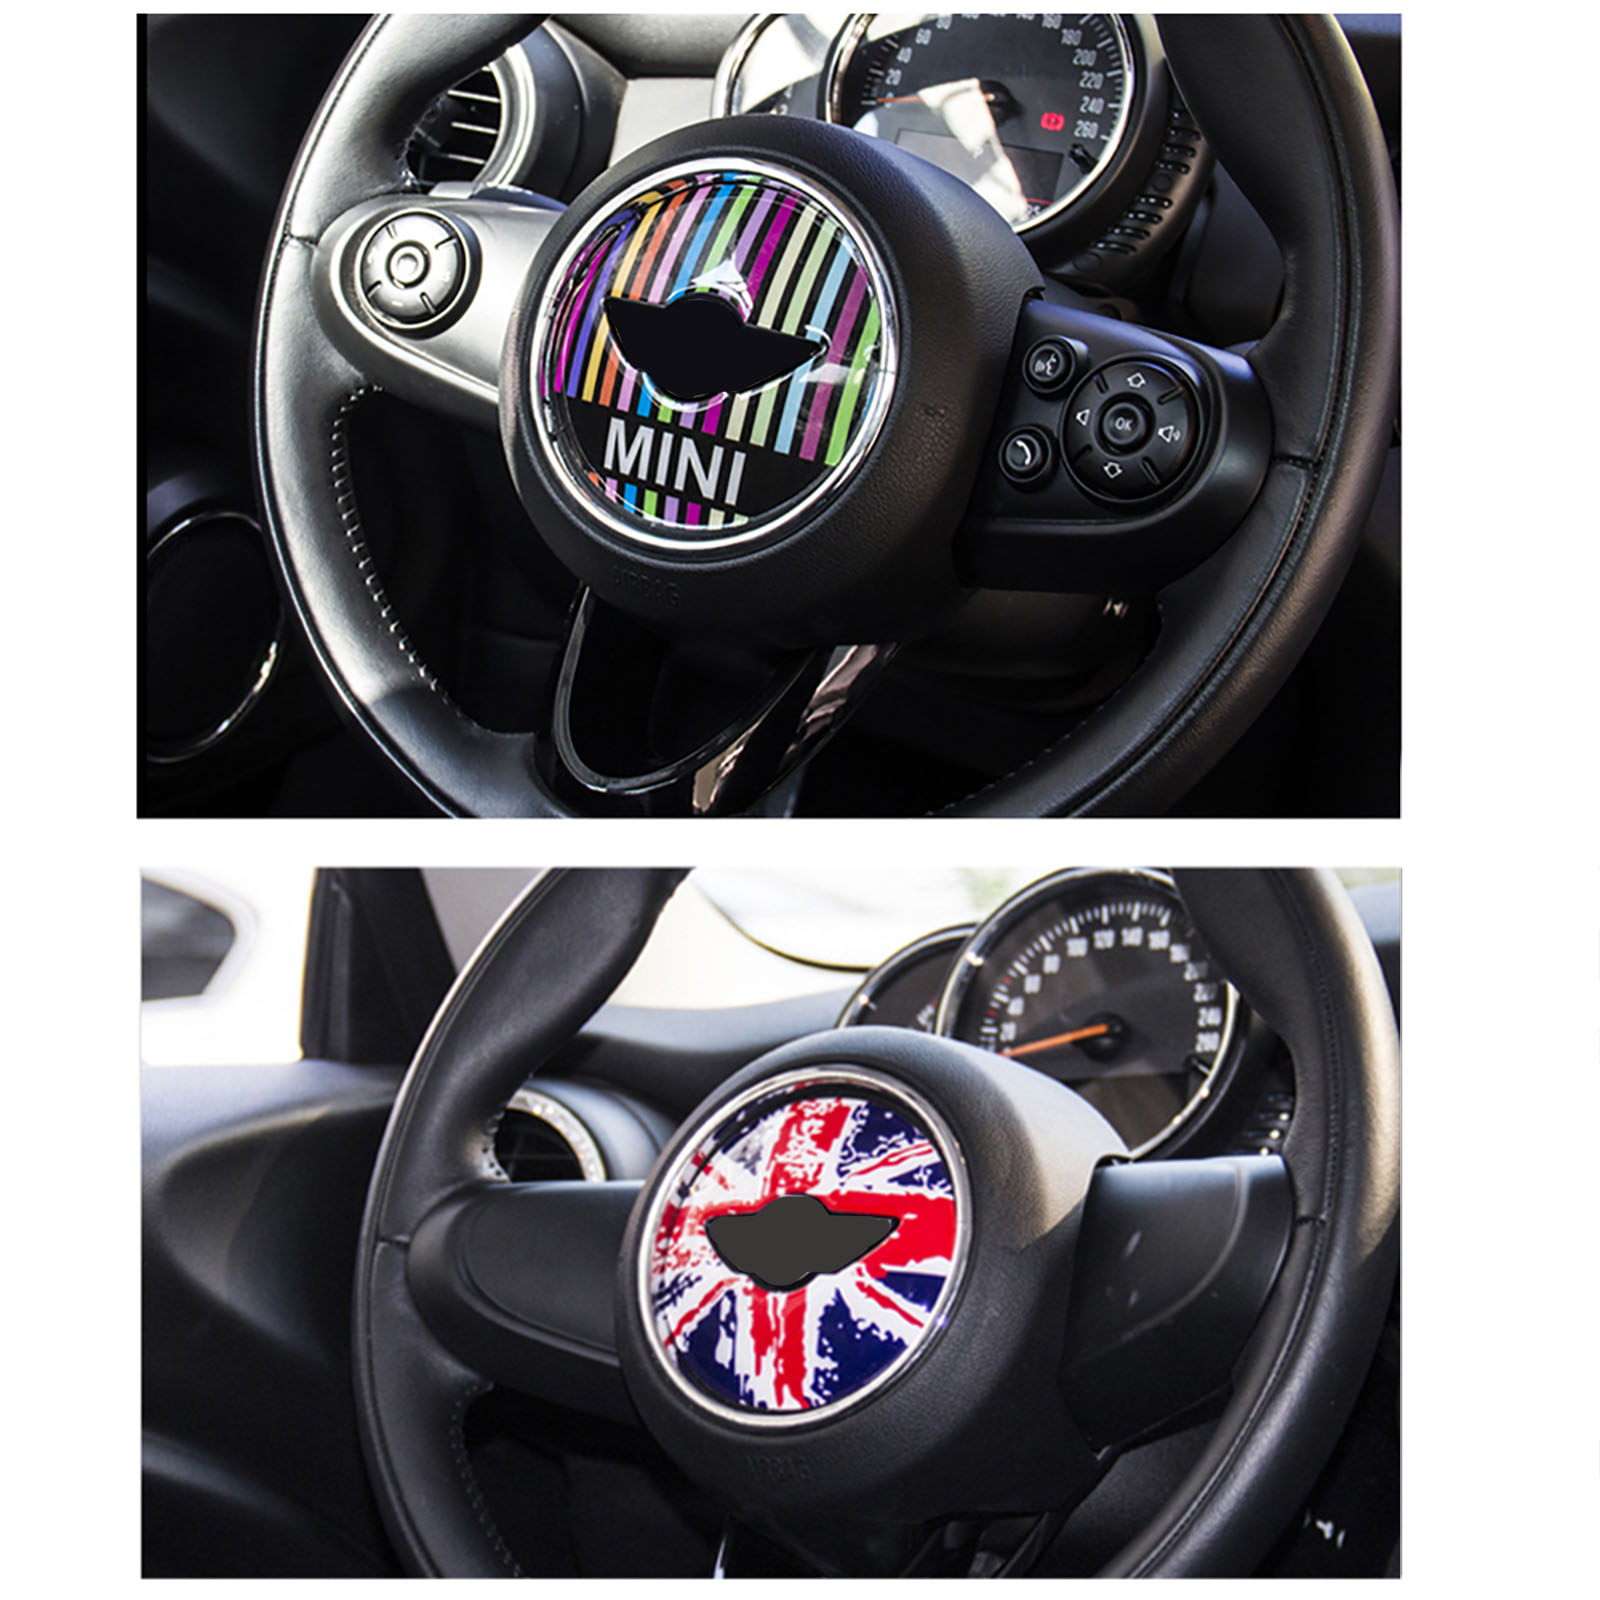 Steering Wheel 3d Stickers Transparent Silicone Decal Graphics For Mini Cooper clubman countryman hardtop R55 R56 R60